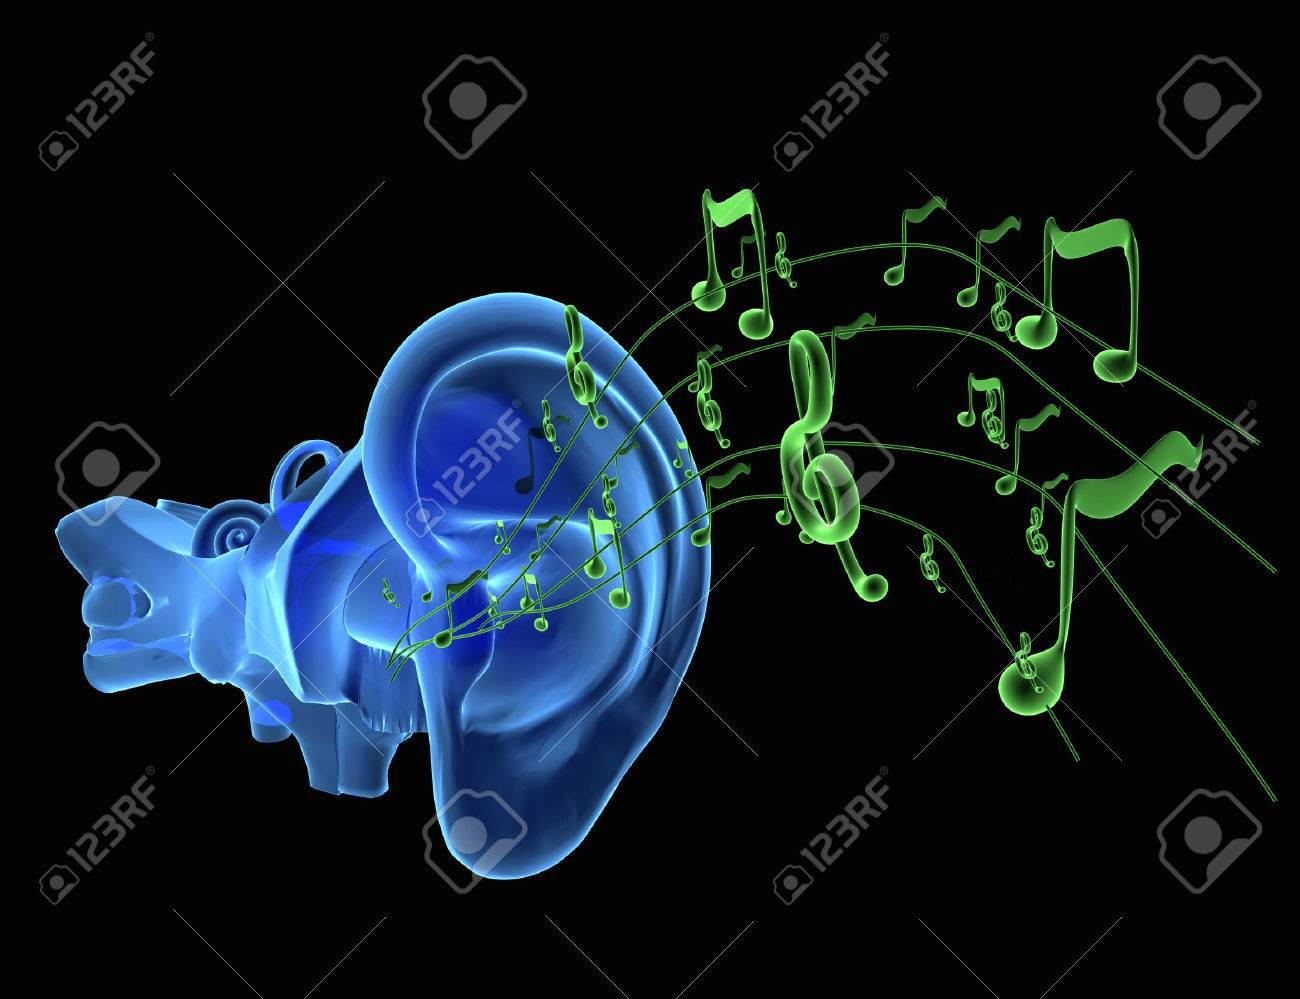 3d Illustration Of Ear Anatomy With Music Notes Coming Stock Photo